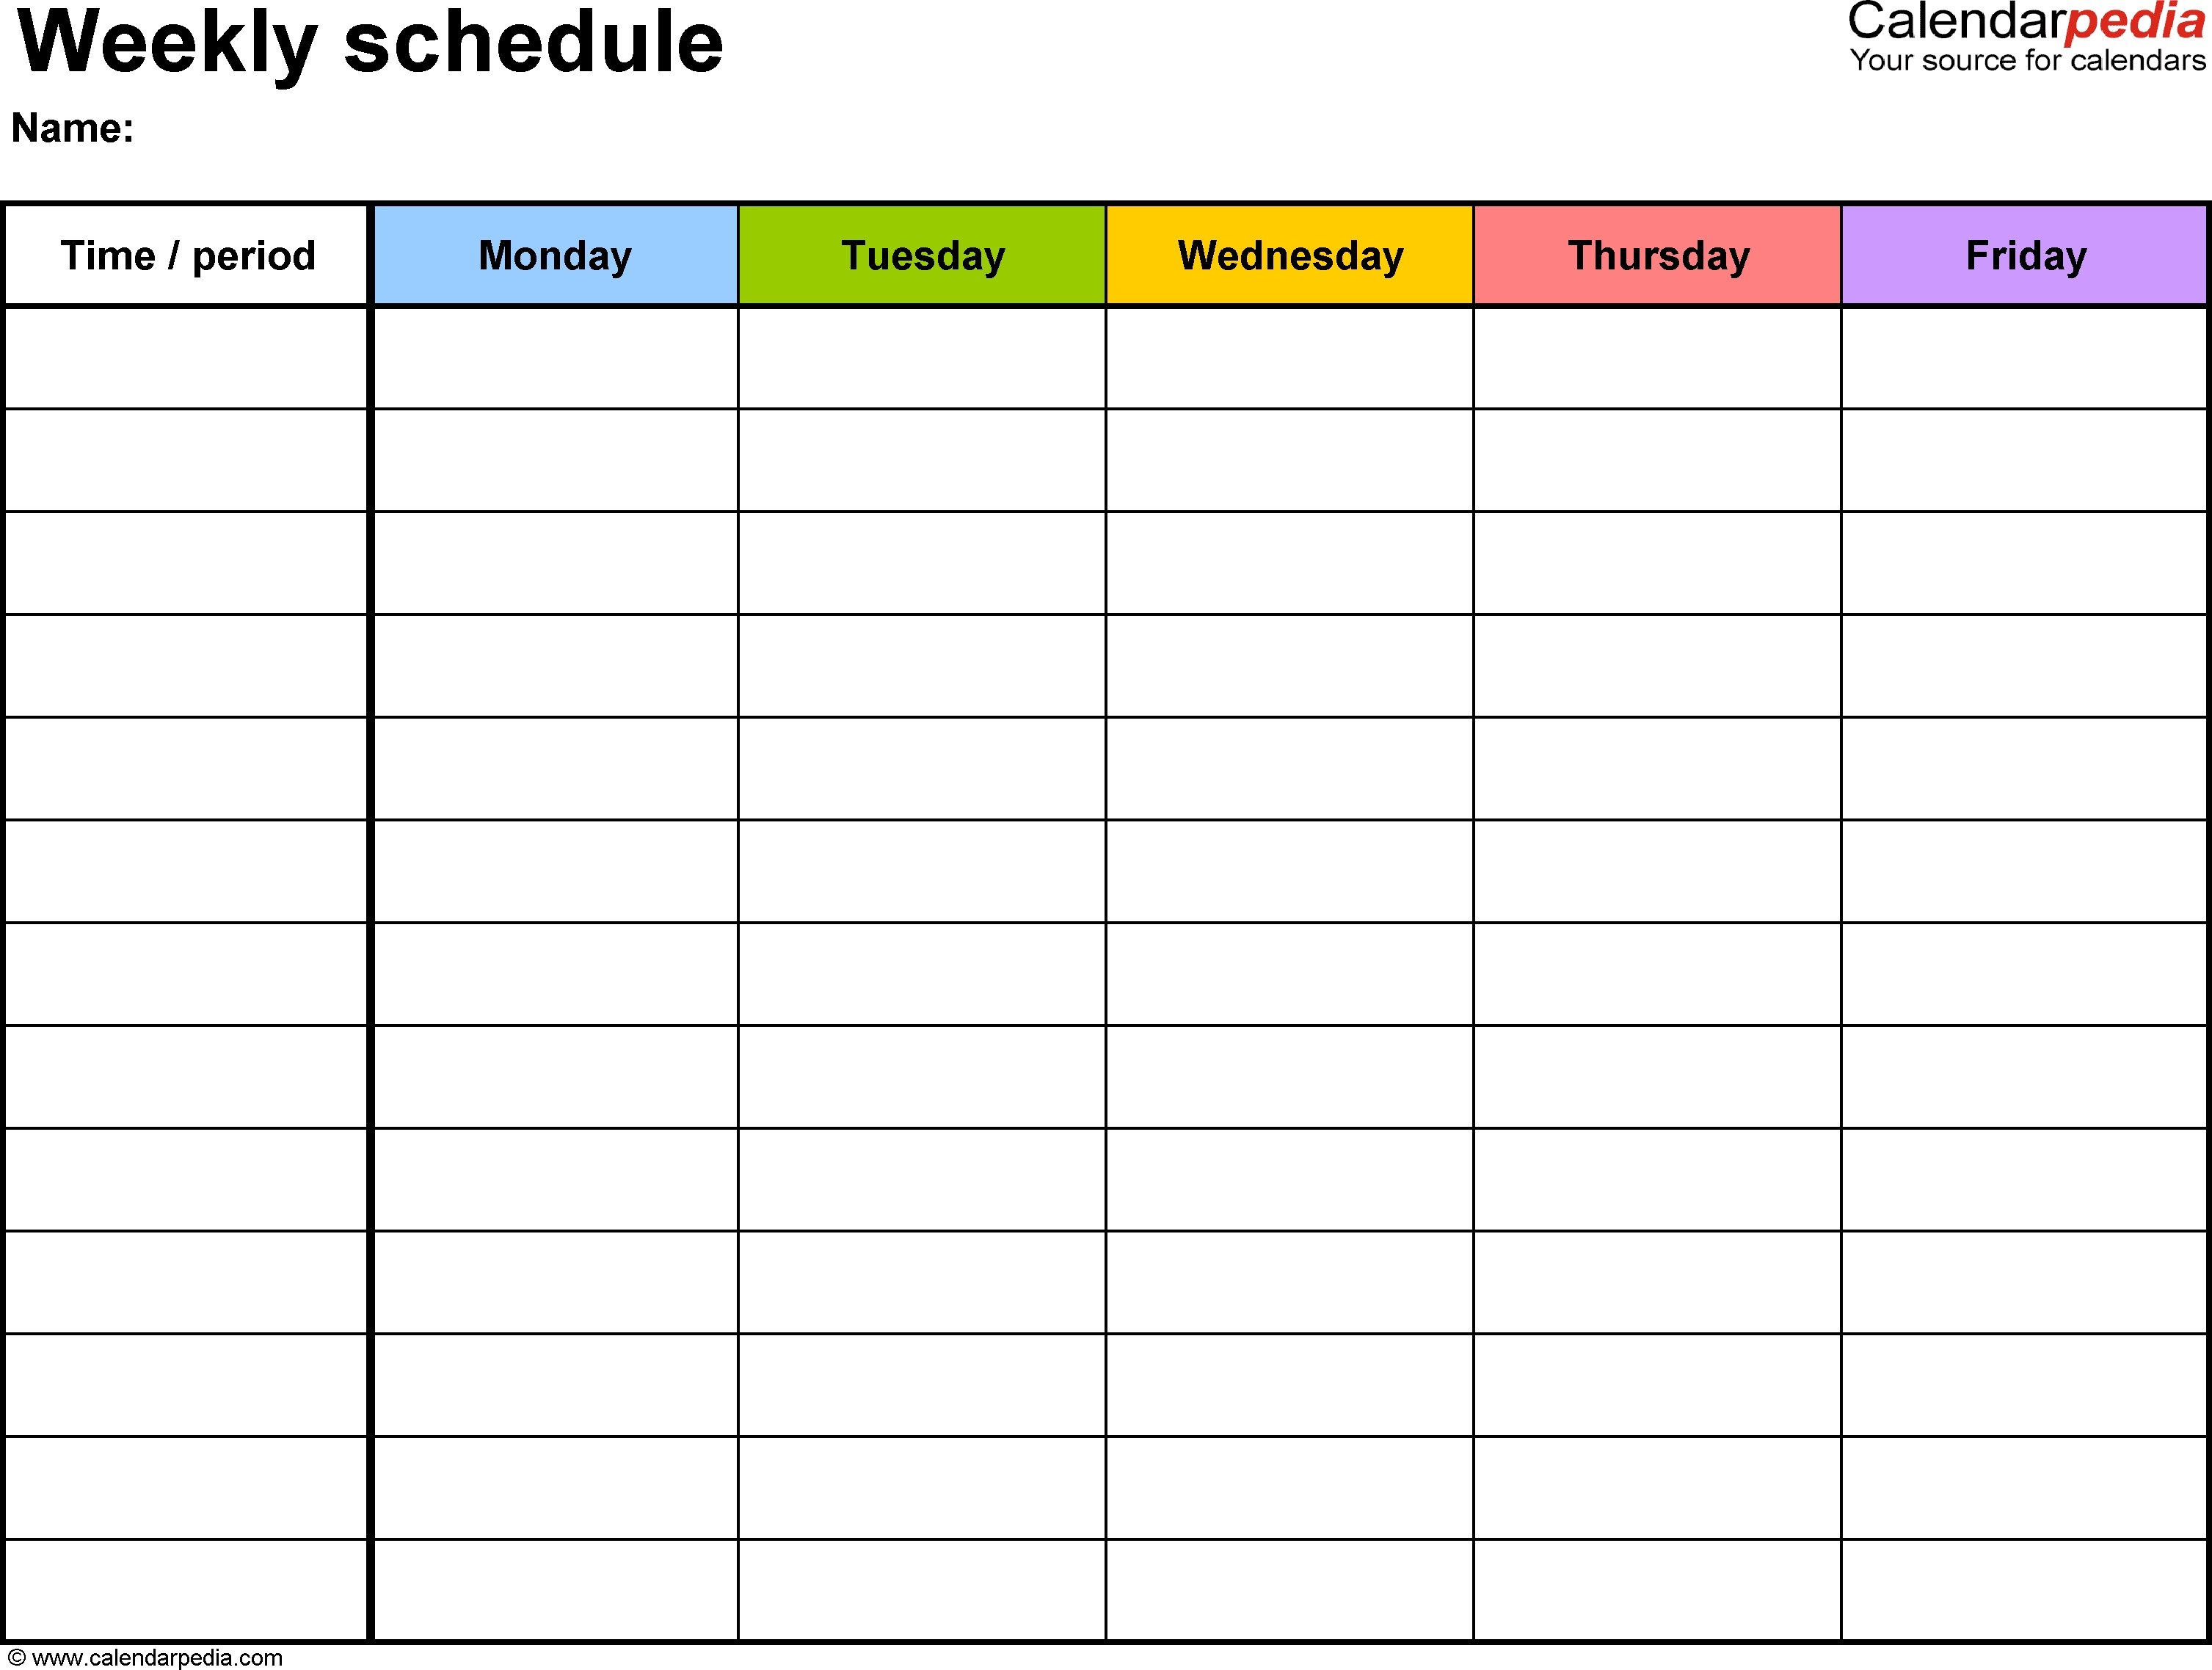 Free Weekly Schedule Templates For Pdf - 18 Templates with Free Printable Weekly Planner Calendar Template